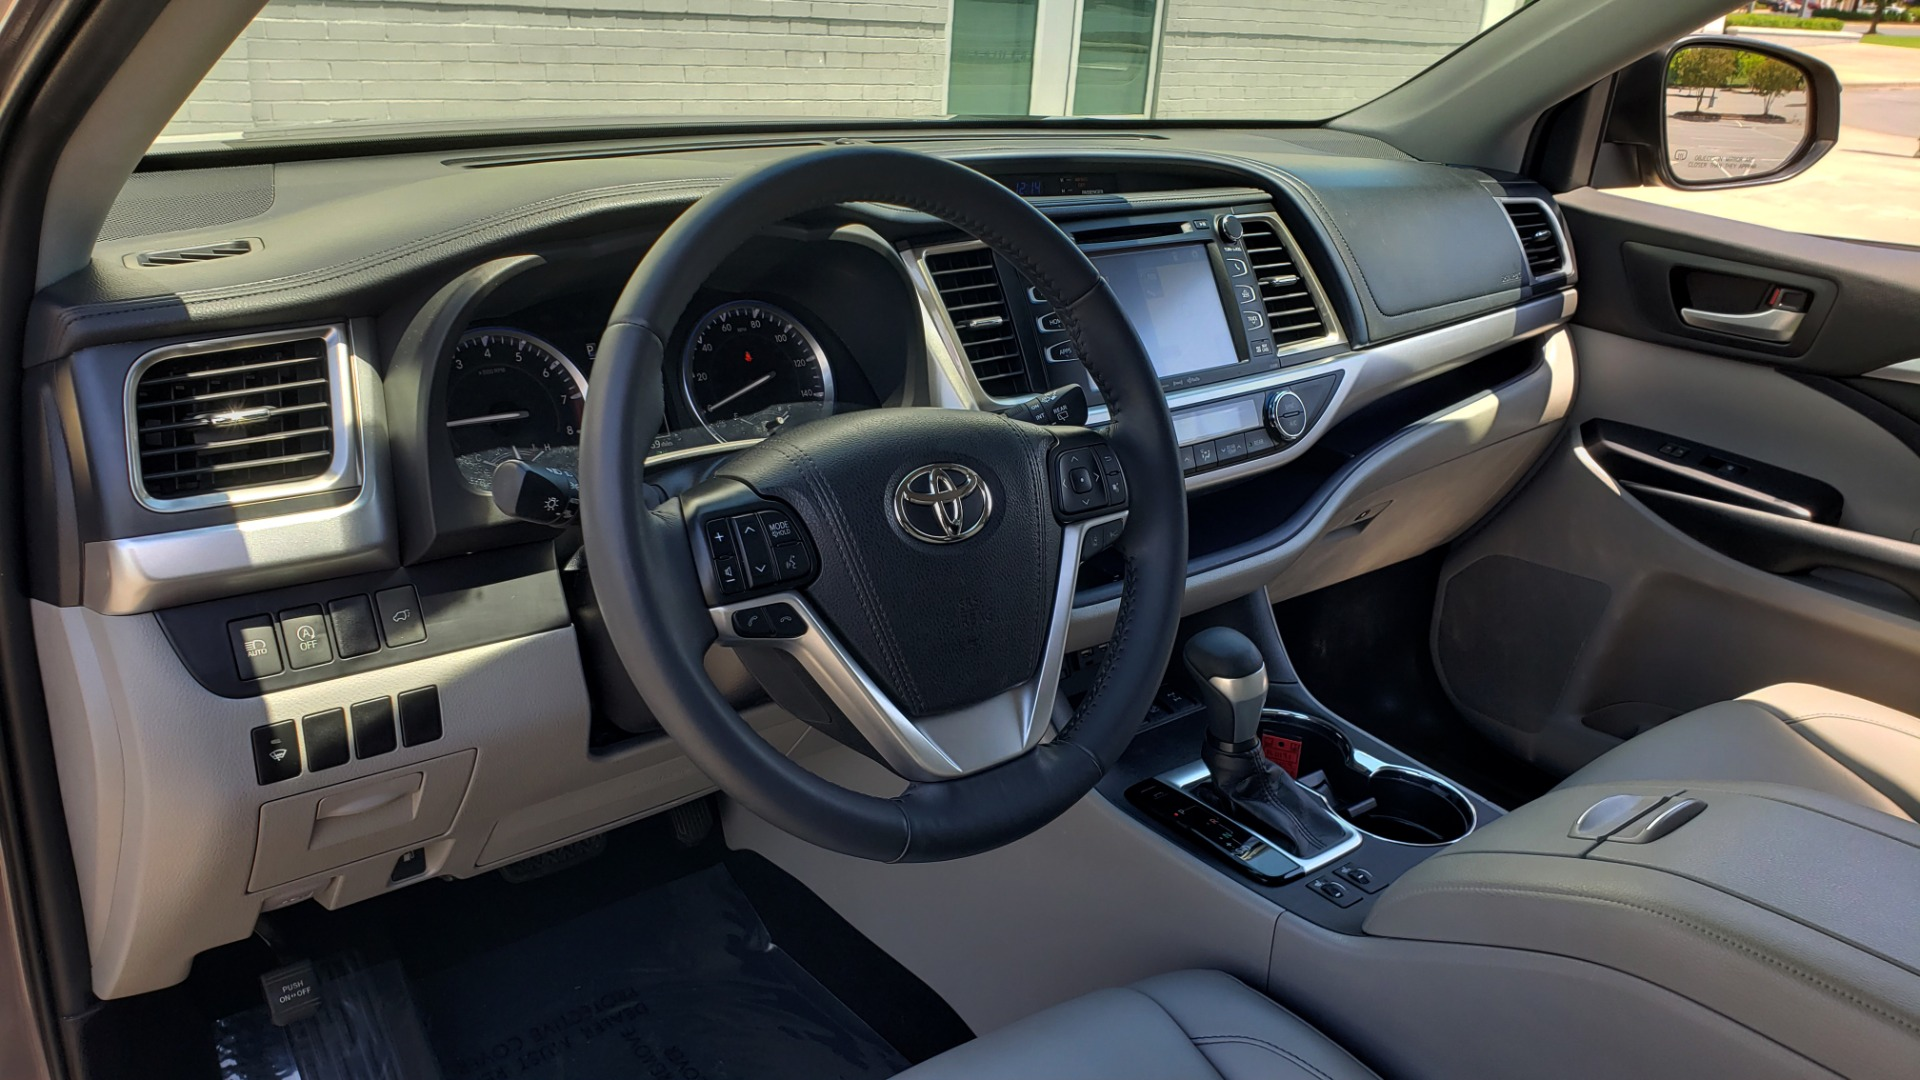 Used 2019 Toyota HIGHLANDER XLE / 3.5L V6 / AWD / LEATHER / 8-SPD AUTO / 1-OWNER for sale $37,500 at Formula Imports in Charlotte NC 28227 34